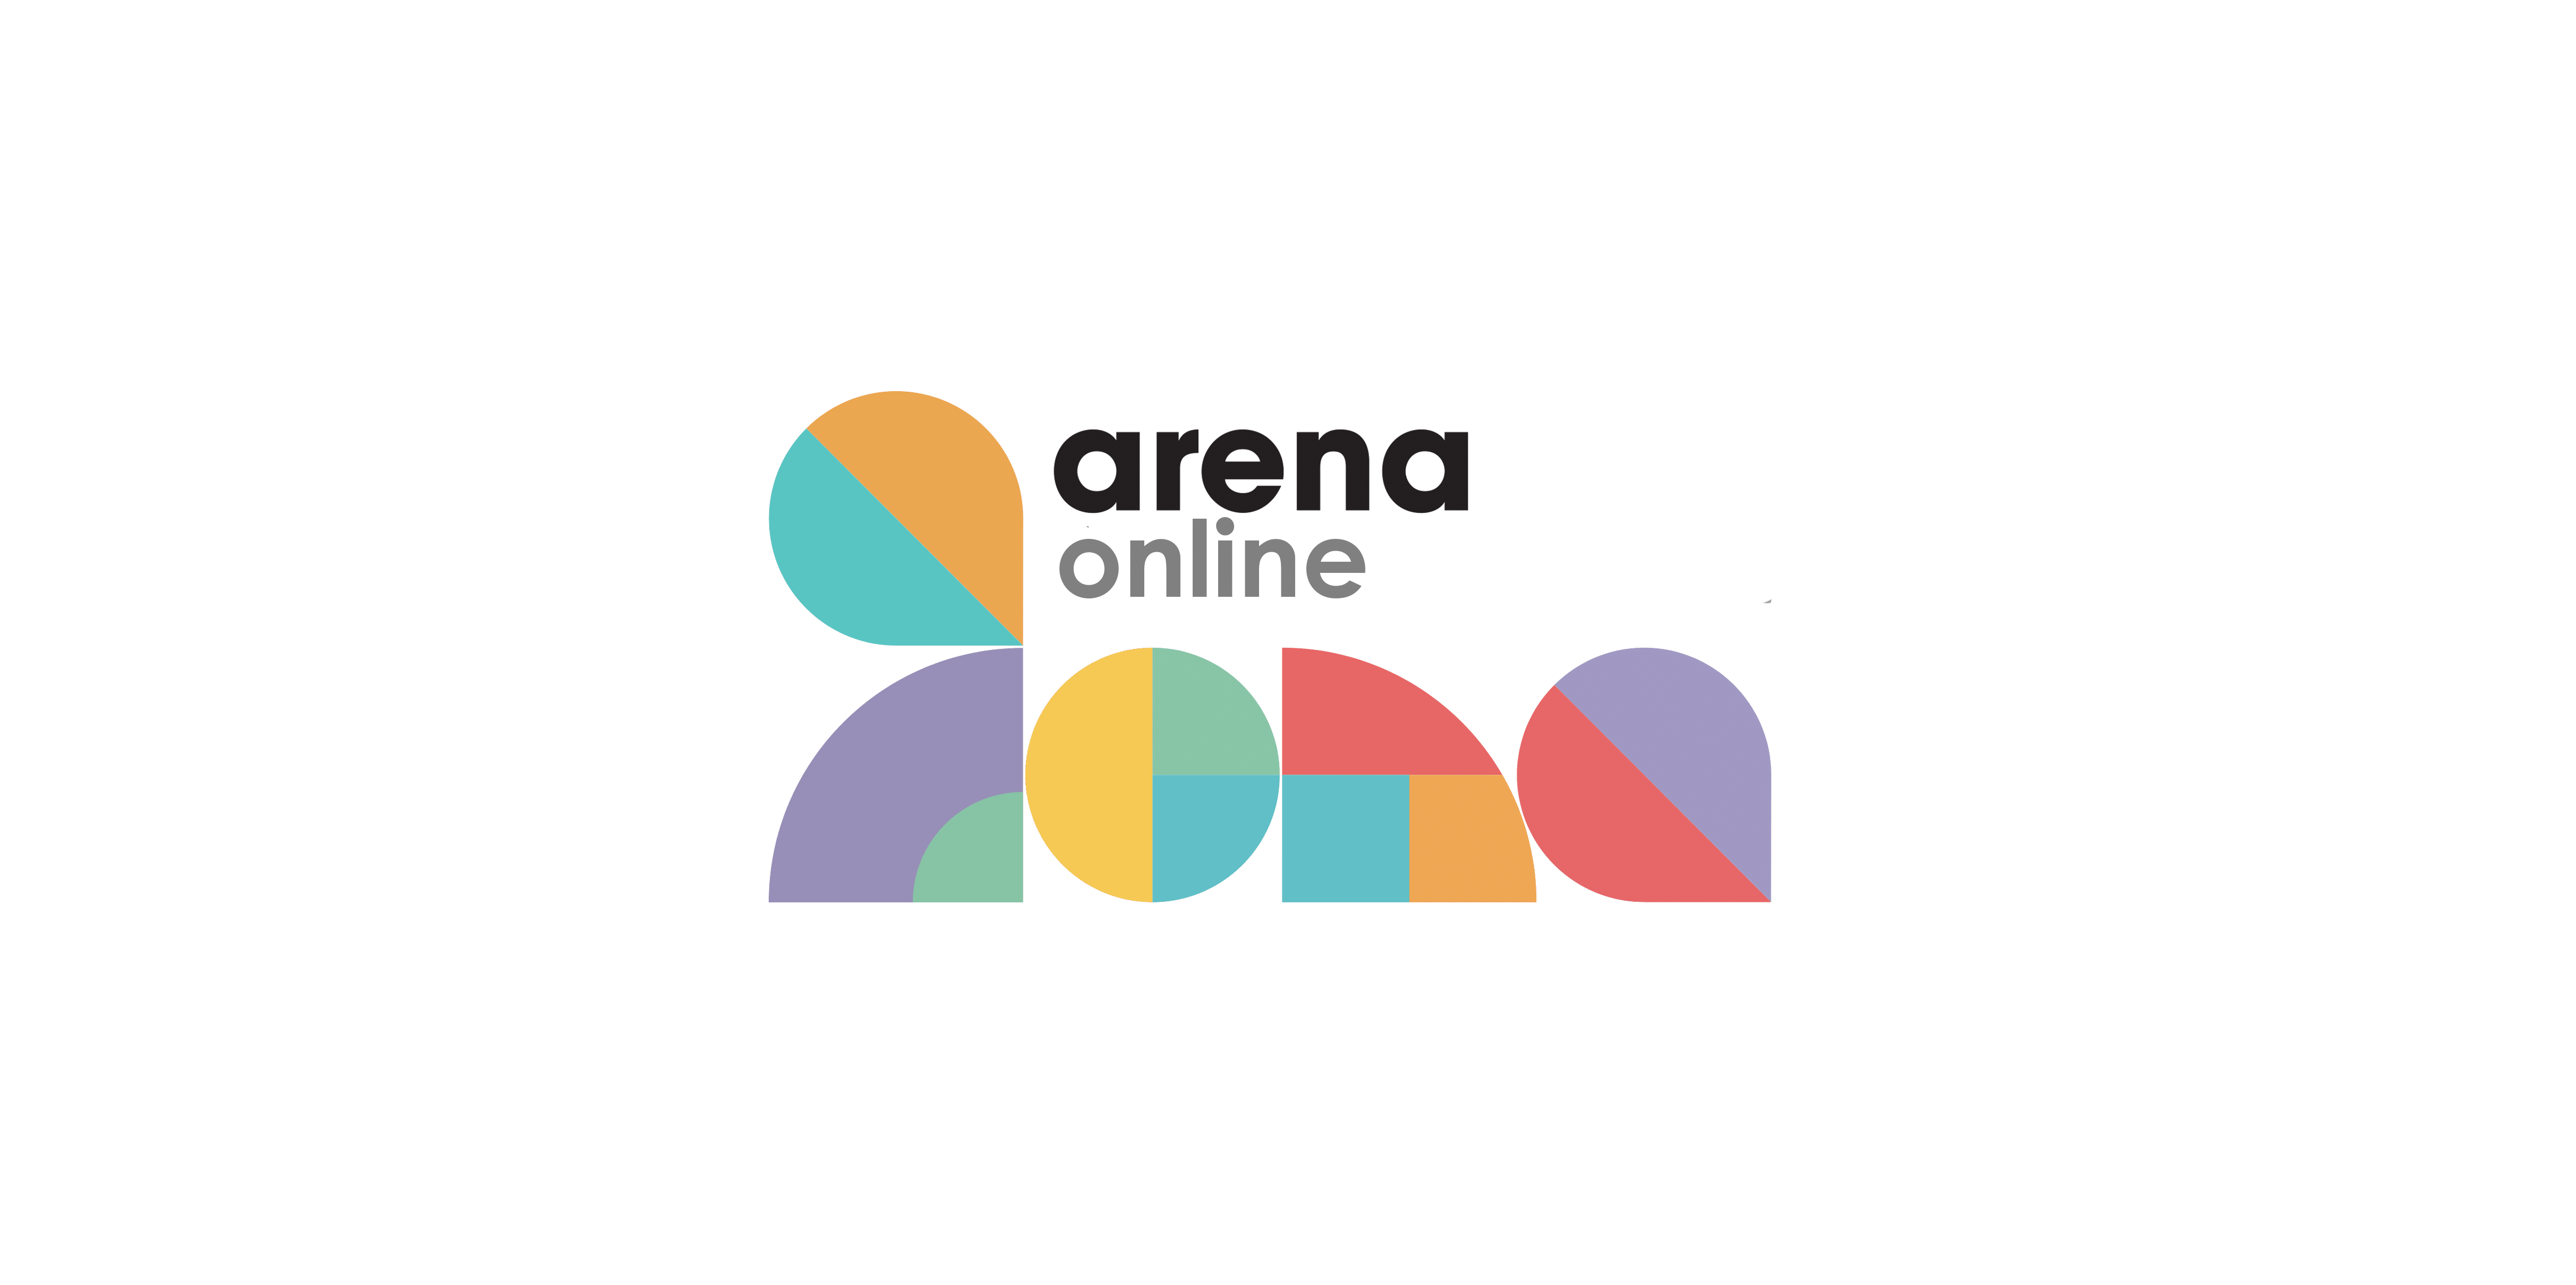 Arena Online text with 5 logo shapes